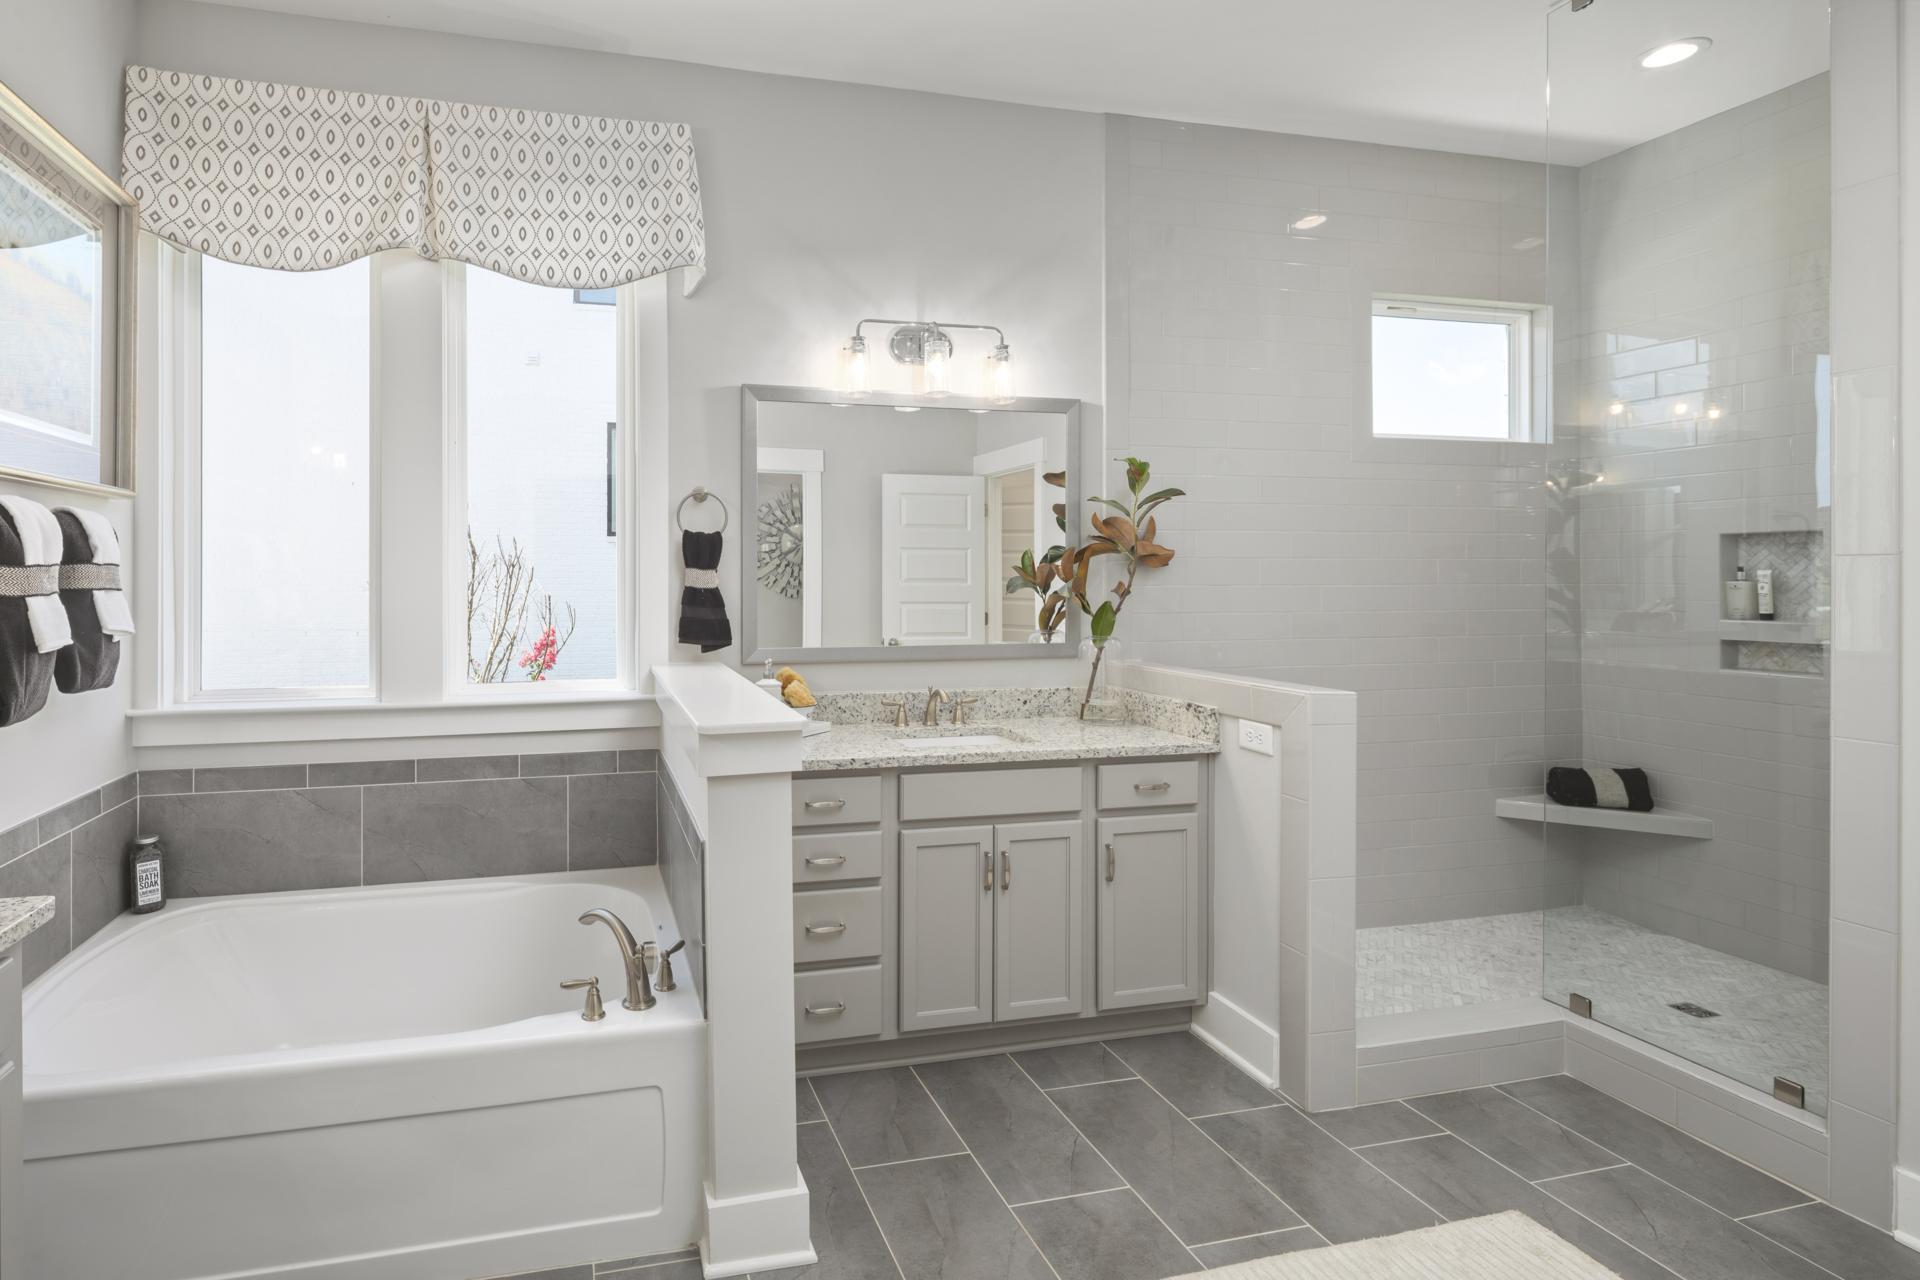 Bathroom featured in the Colton By Drees Homes in Nashville, TN